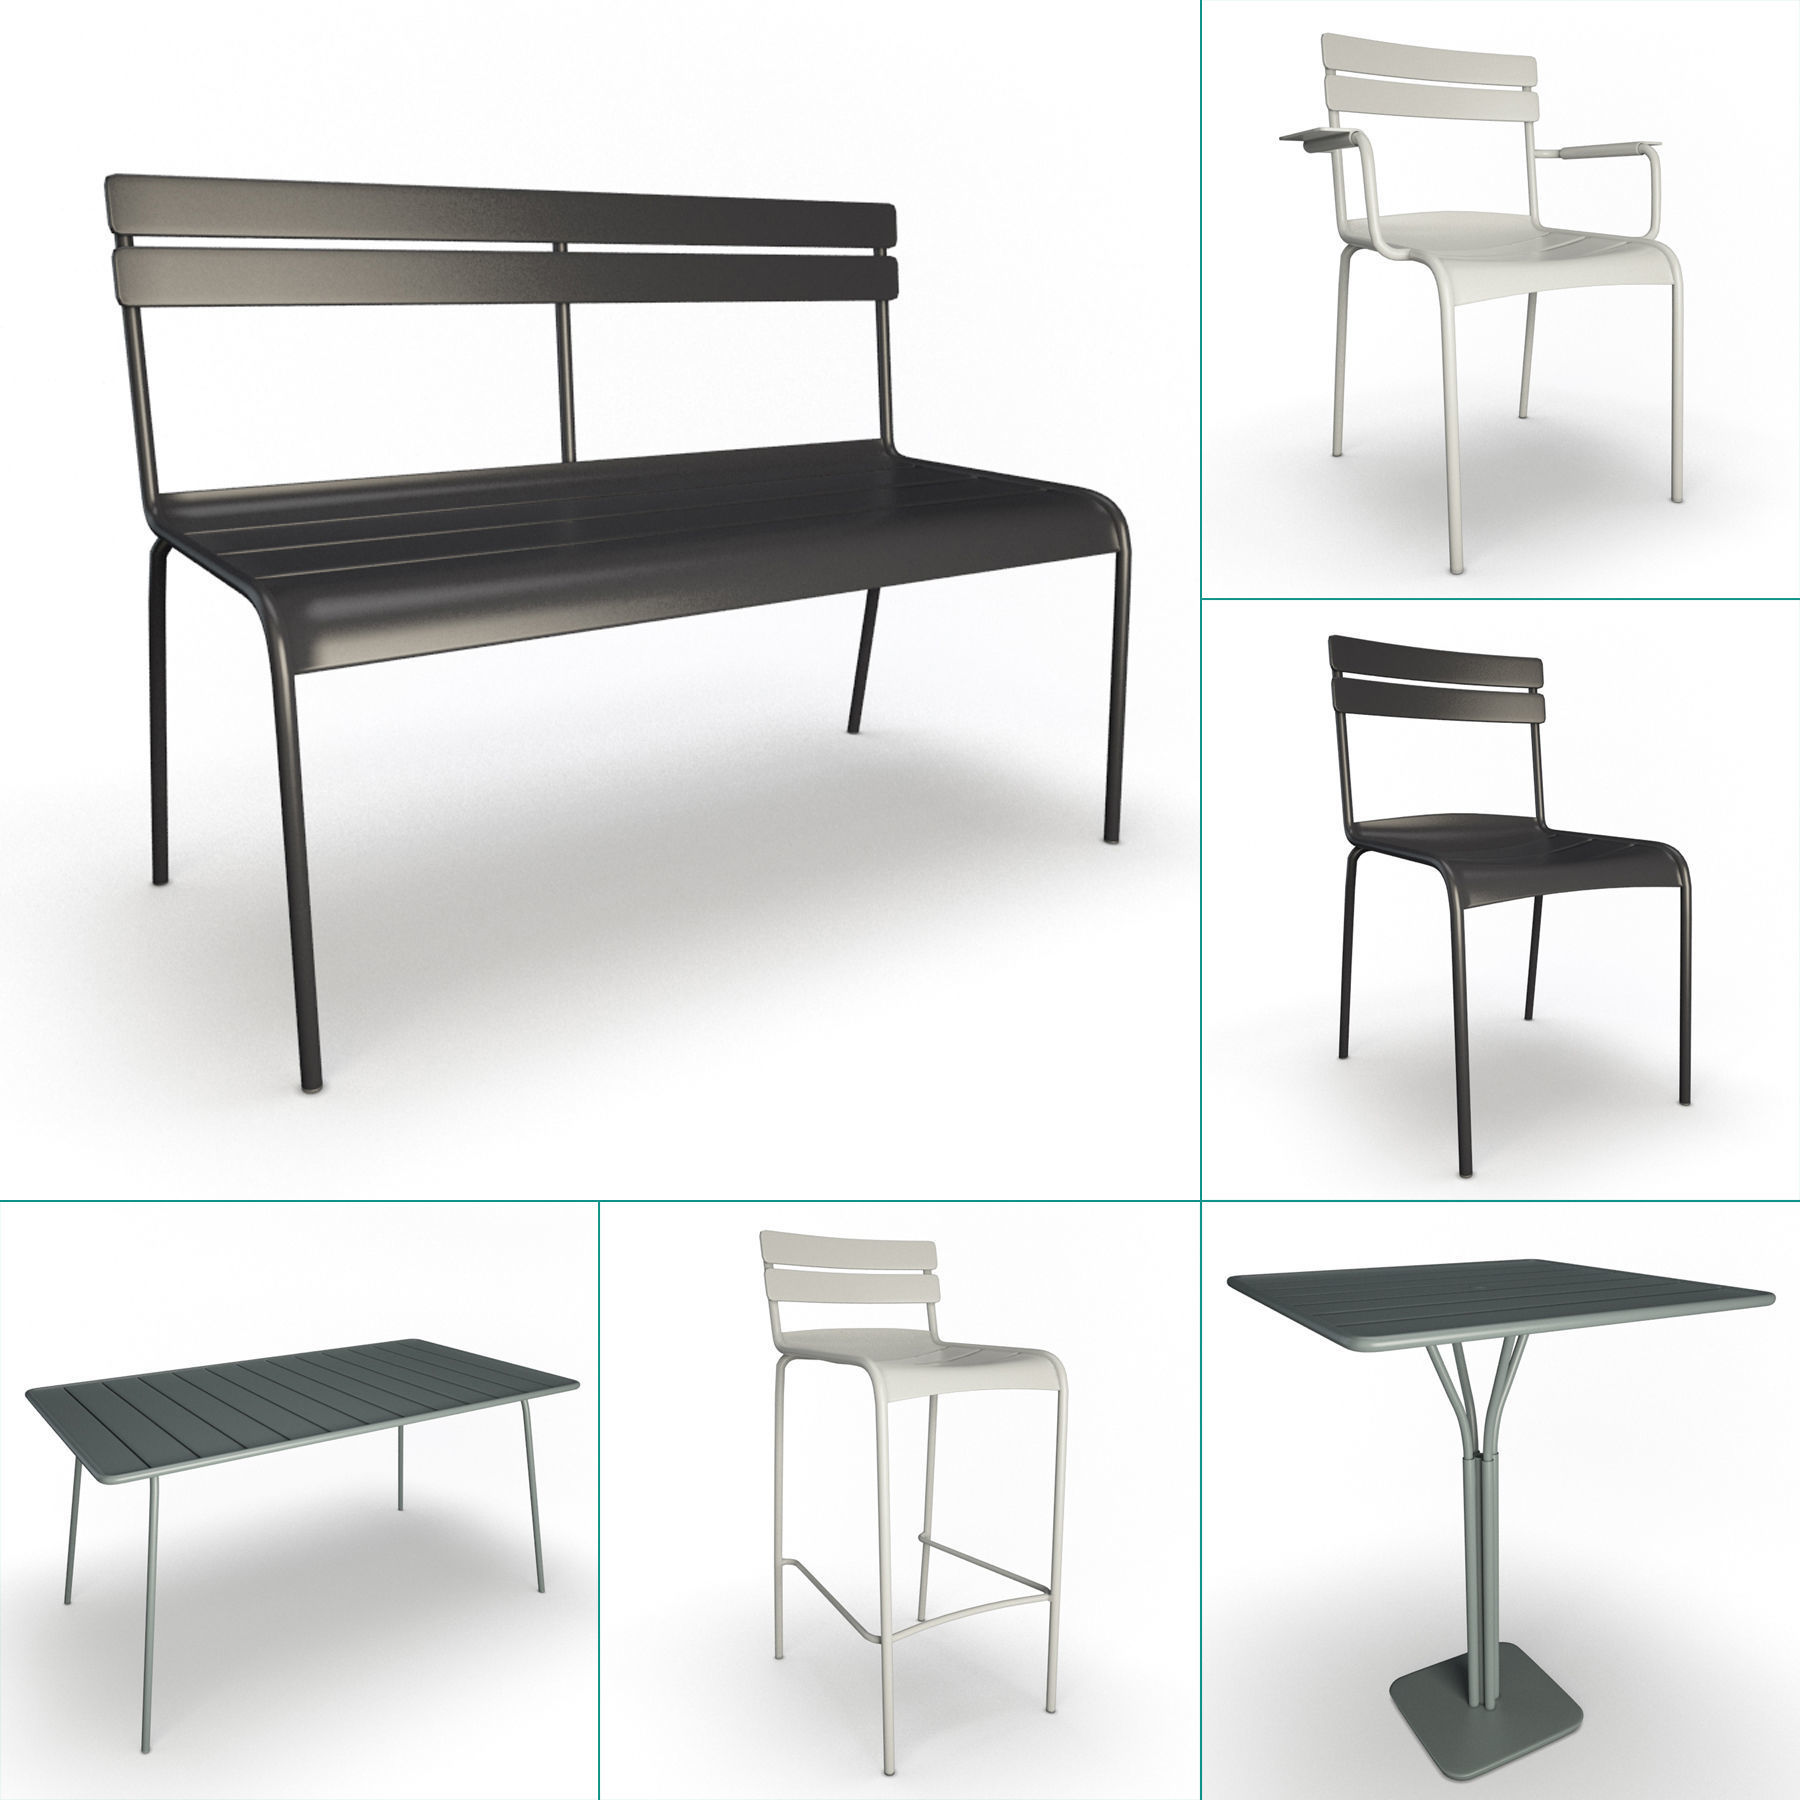 Luxembourg Metallic Outdoor Furniture Fermob